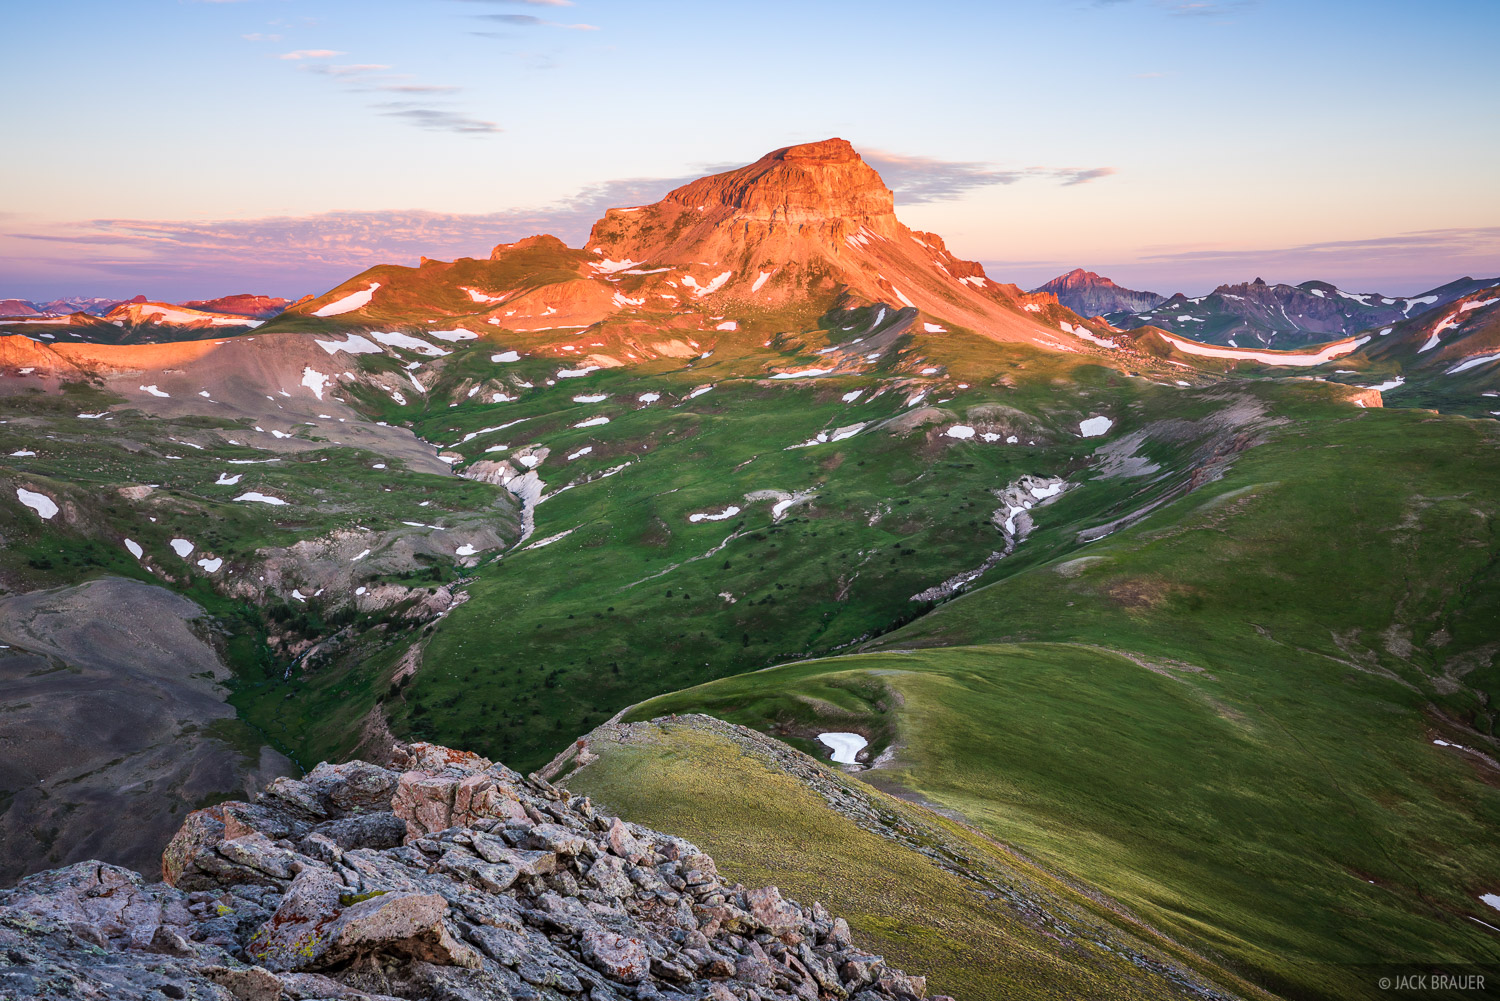 Sunrise light on Uncompahgre Peak, the highest mountain in the San Juan Mountains at 14,309 ft. tall.